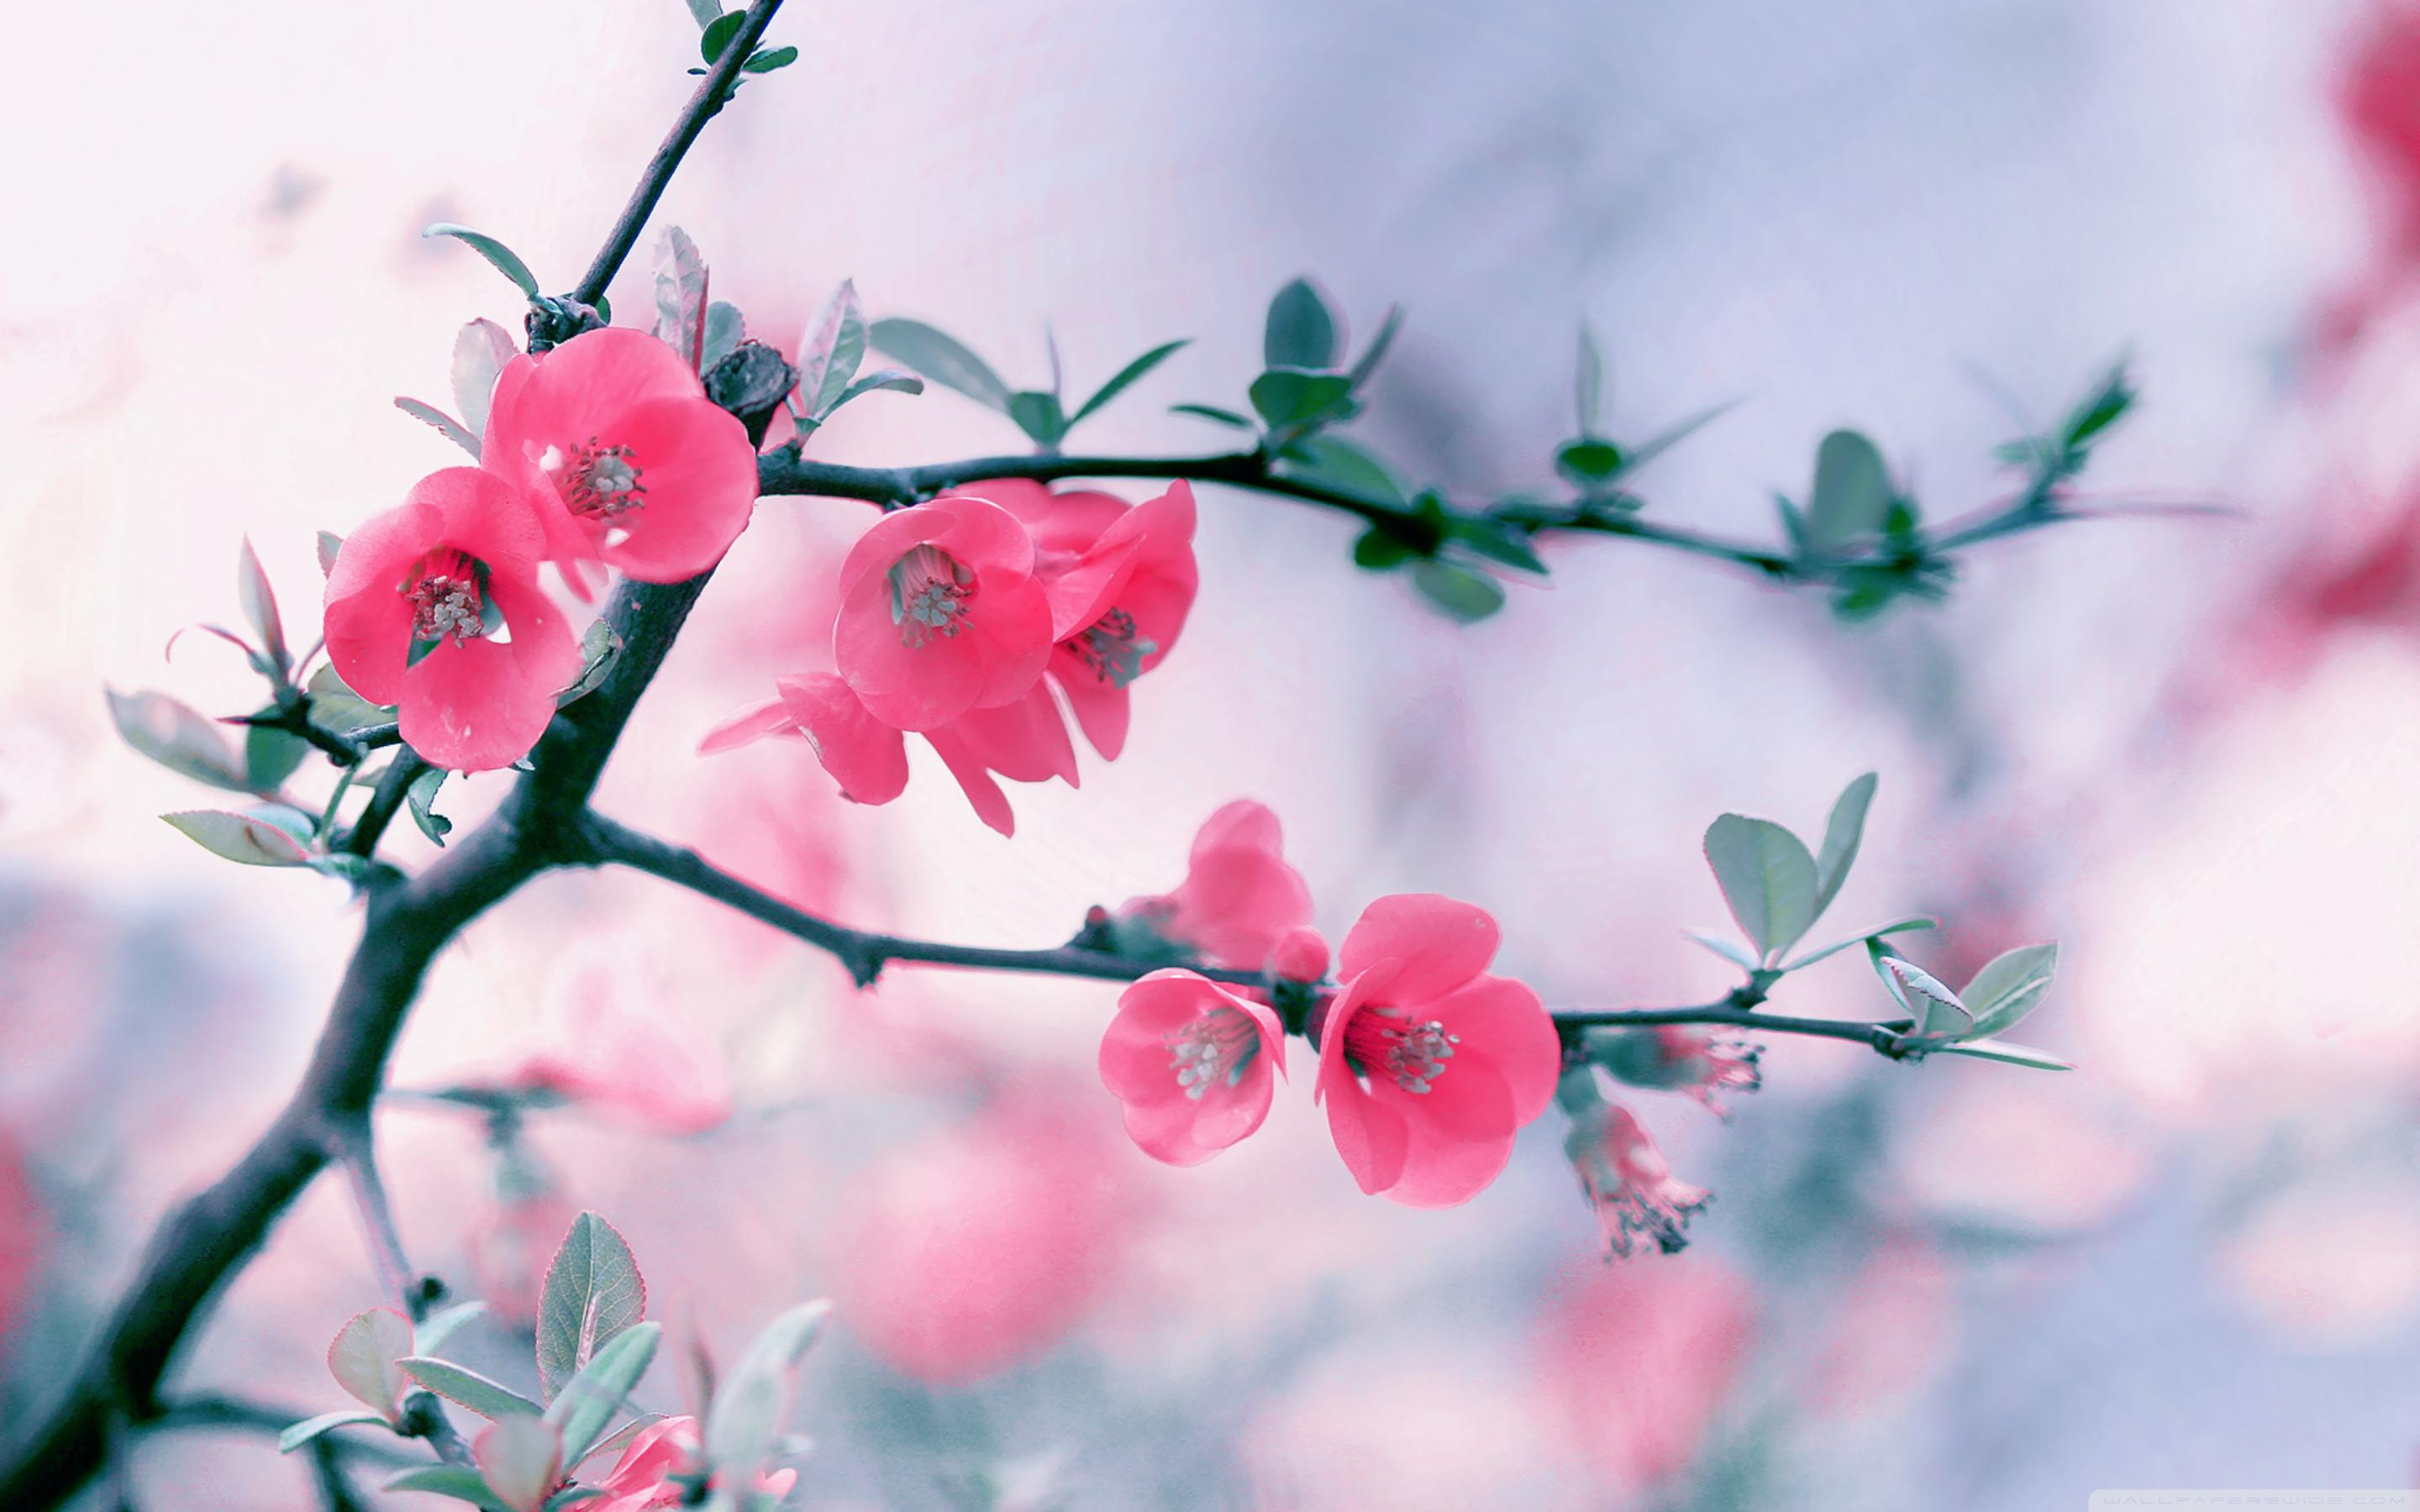 spring-flowers-wallpaper-for-desktop-14-hd-wallpapers-planezen-com